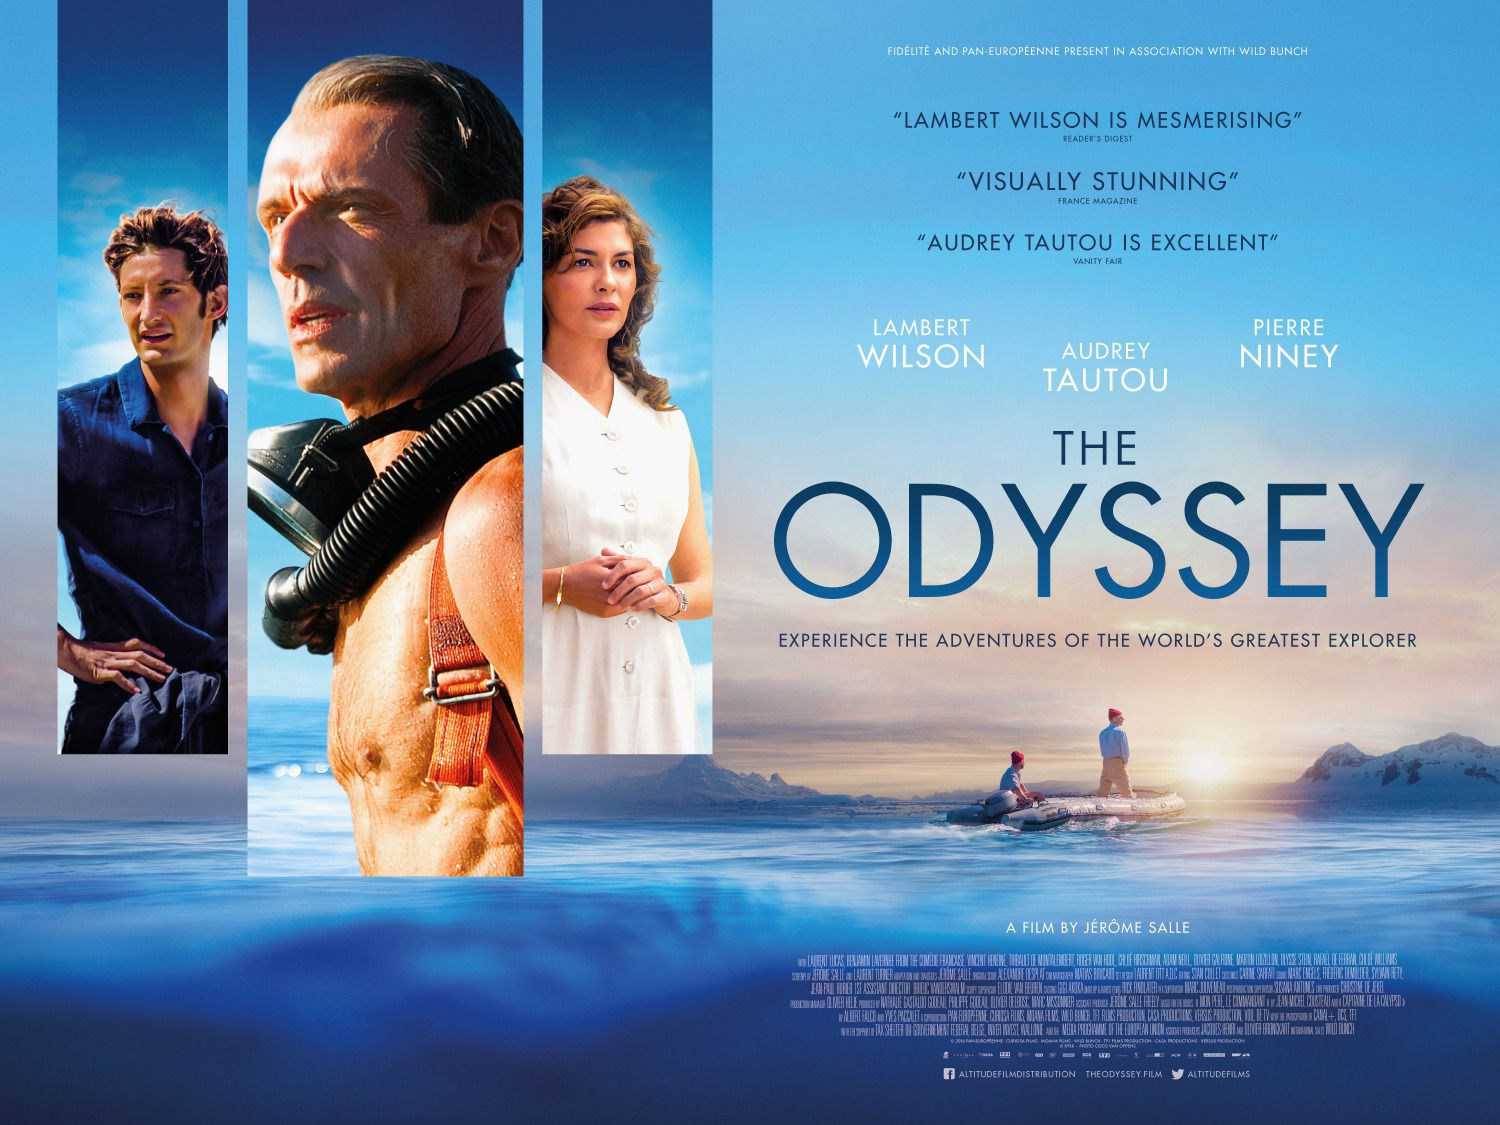 The Odyssey with Lambert Wilson, Audrey Tatou and Pierre Niney